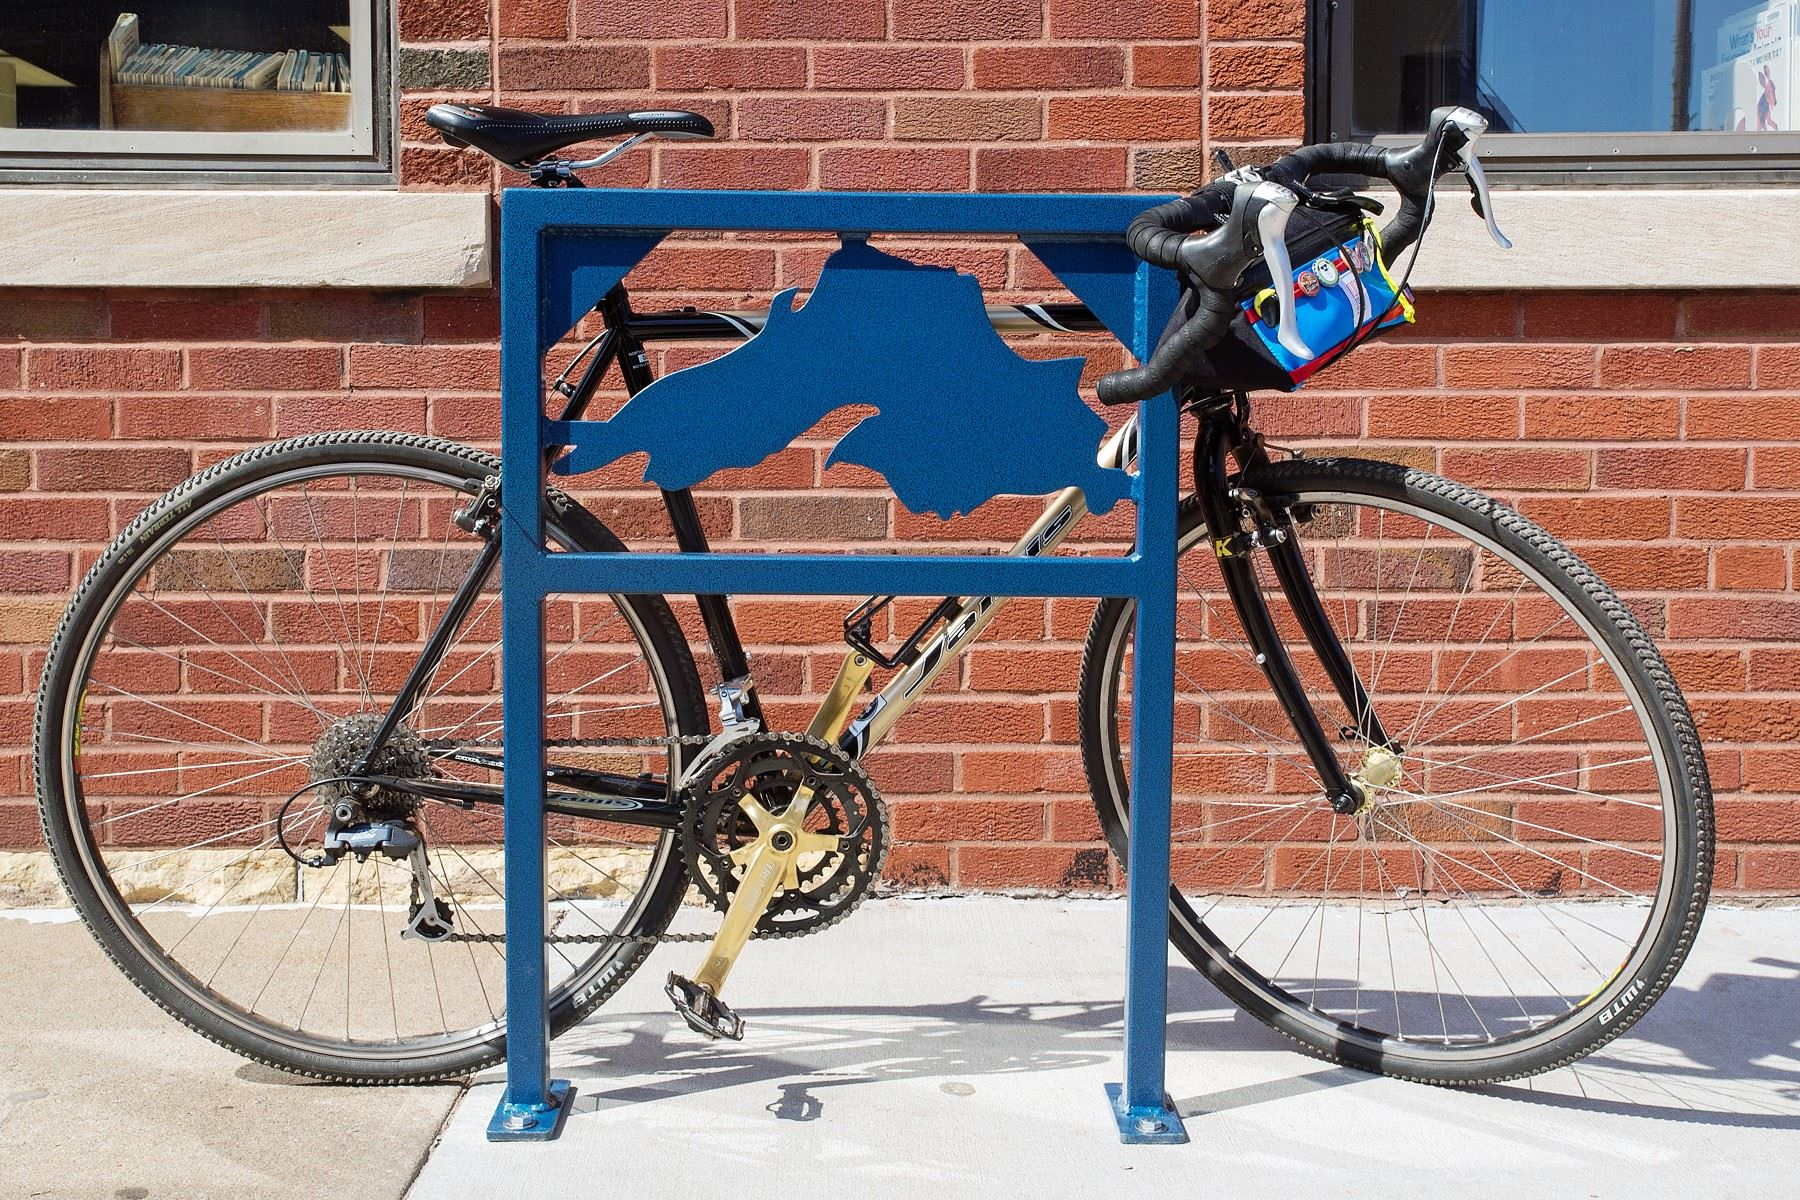 Bike on a Rack